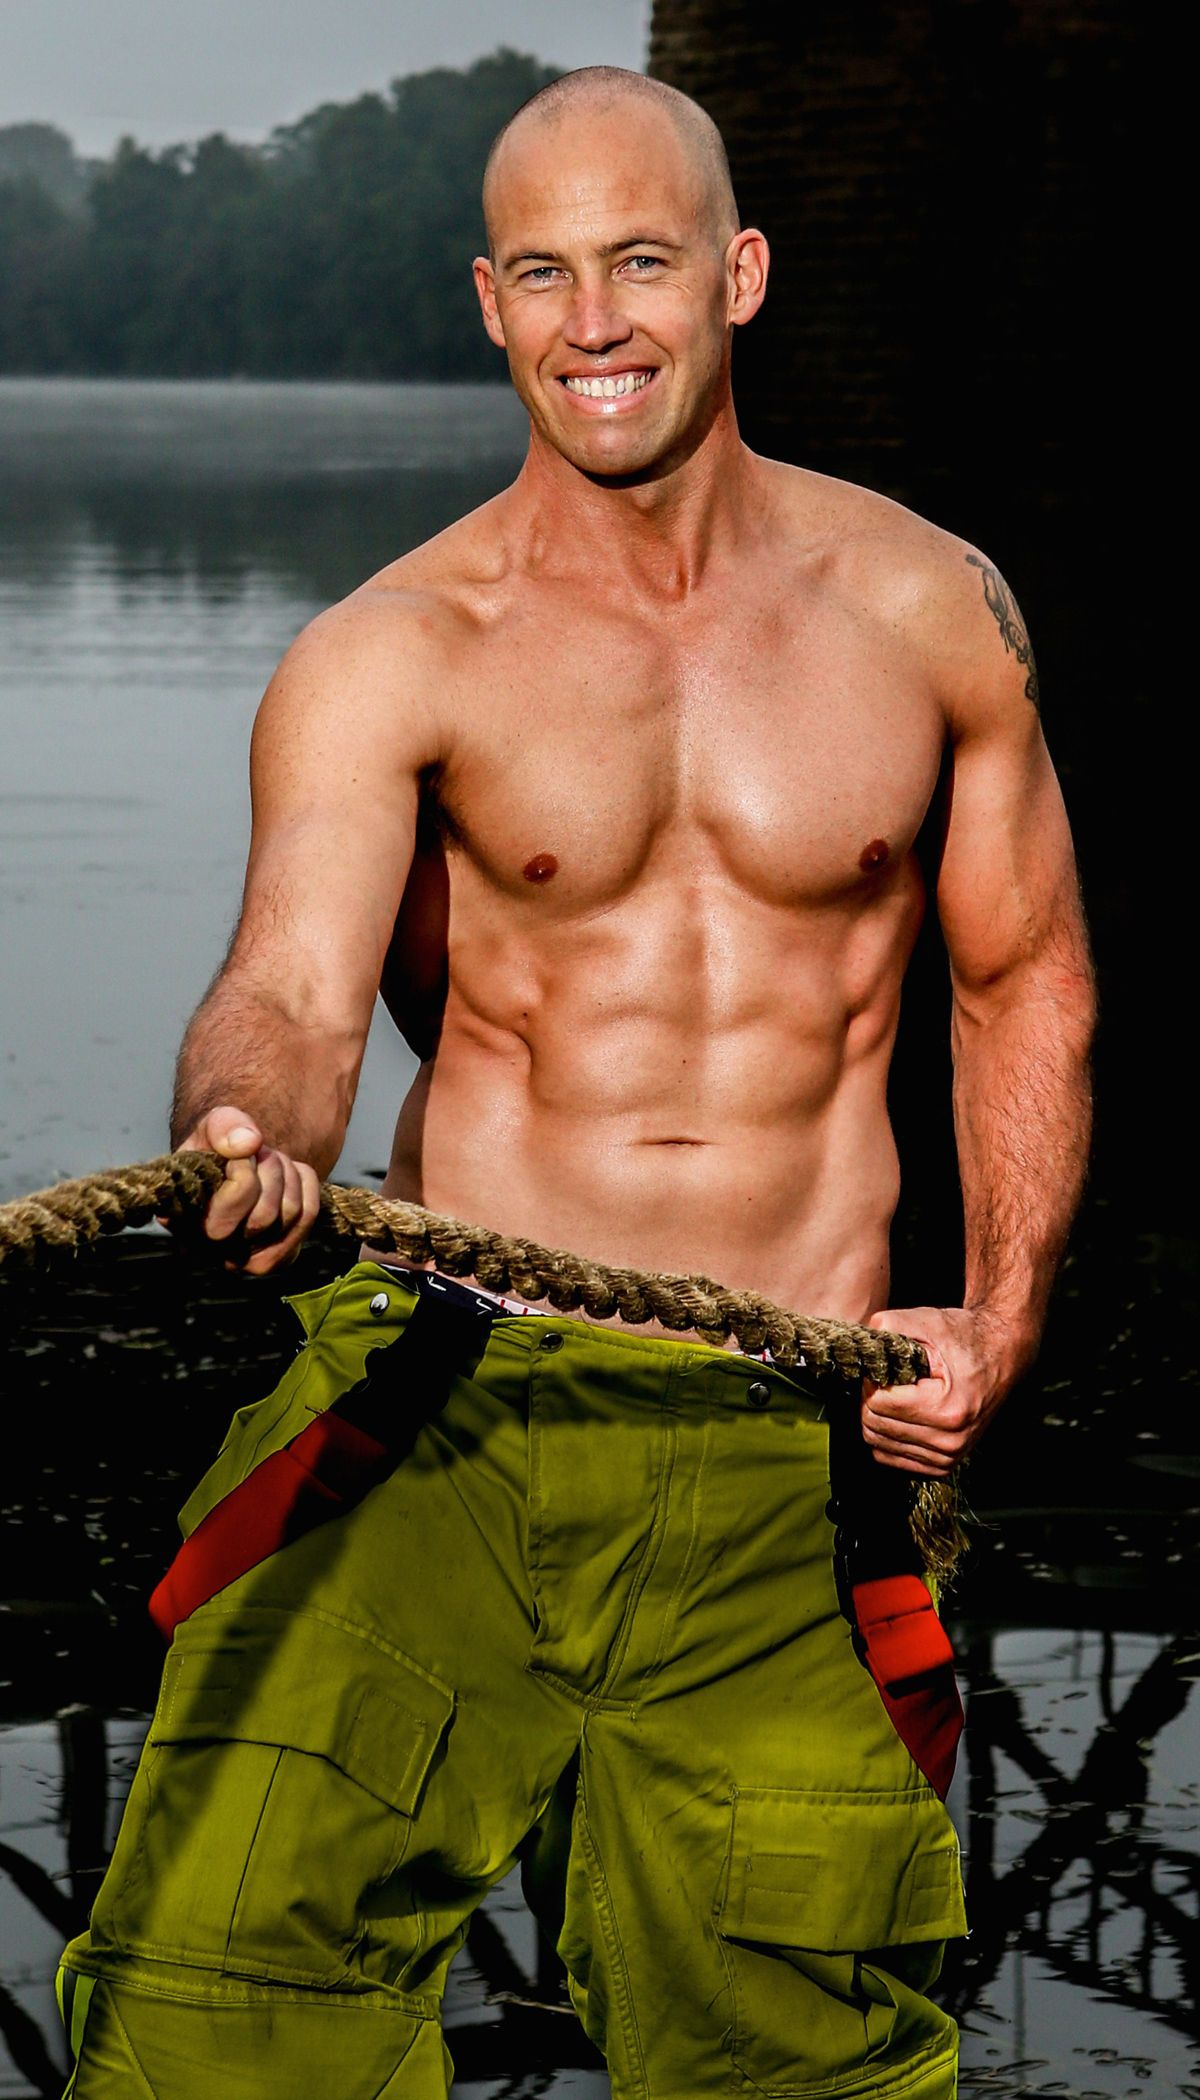 Pin About Fashion Models Firefighter And Hot Firefighters